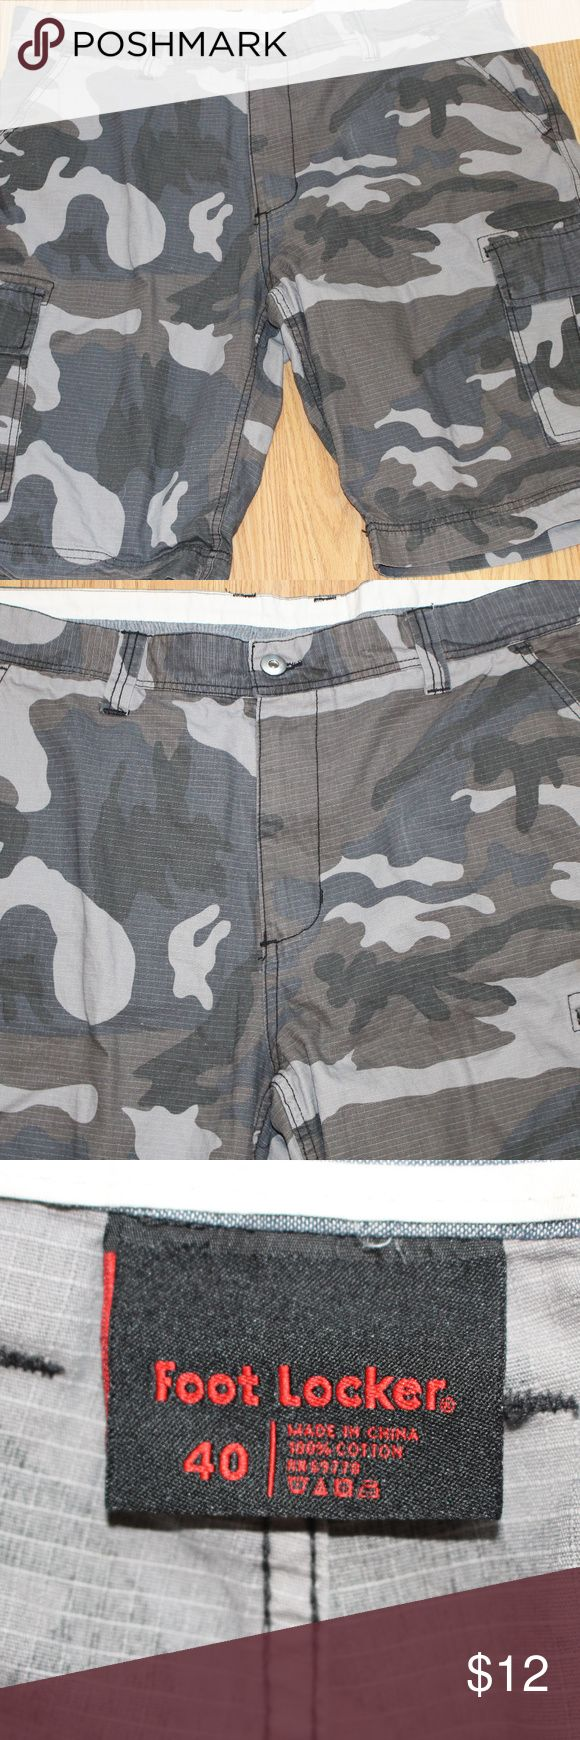 Foot Locker Men's Camo Shorts Sz 40 Foot Locker Men's Camo Shorts.  Size 40 Waist.  Excellent condition.  NOTE: All button down shirts, polo shirts, and T Shirts go into a two bag sealed POLYMAILER (ACCEPTABLE PER POSHMARK POLICY). Generally 2XL and under.  This will include these shorts. Foot Locker Shorts Cargo